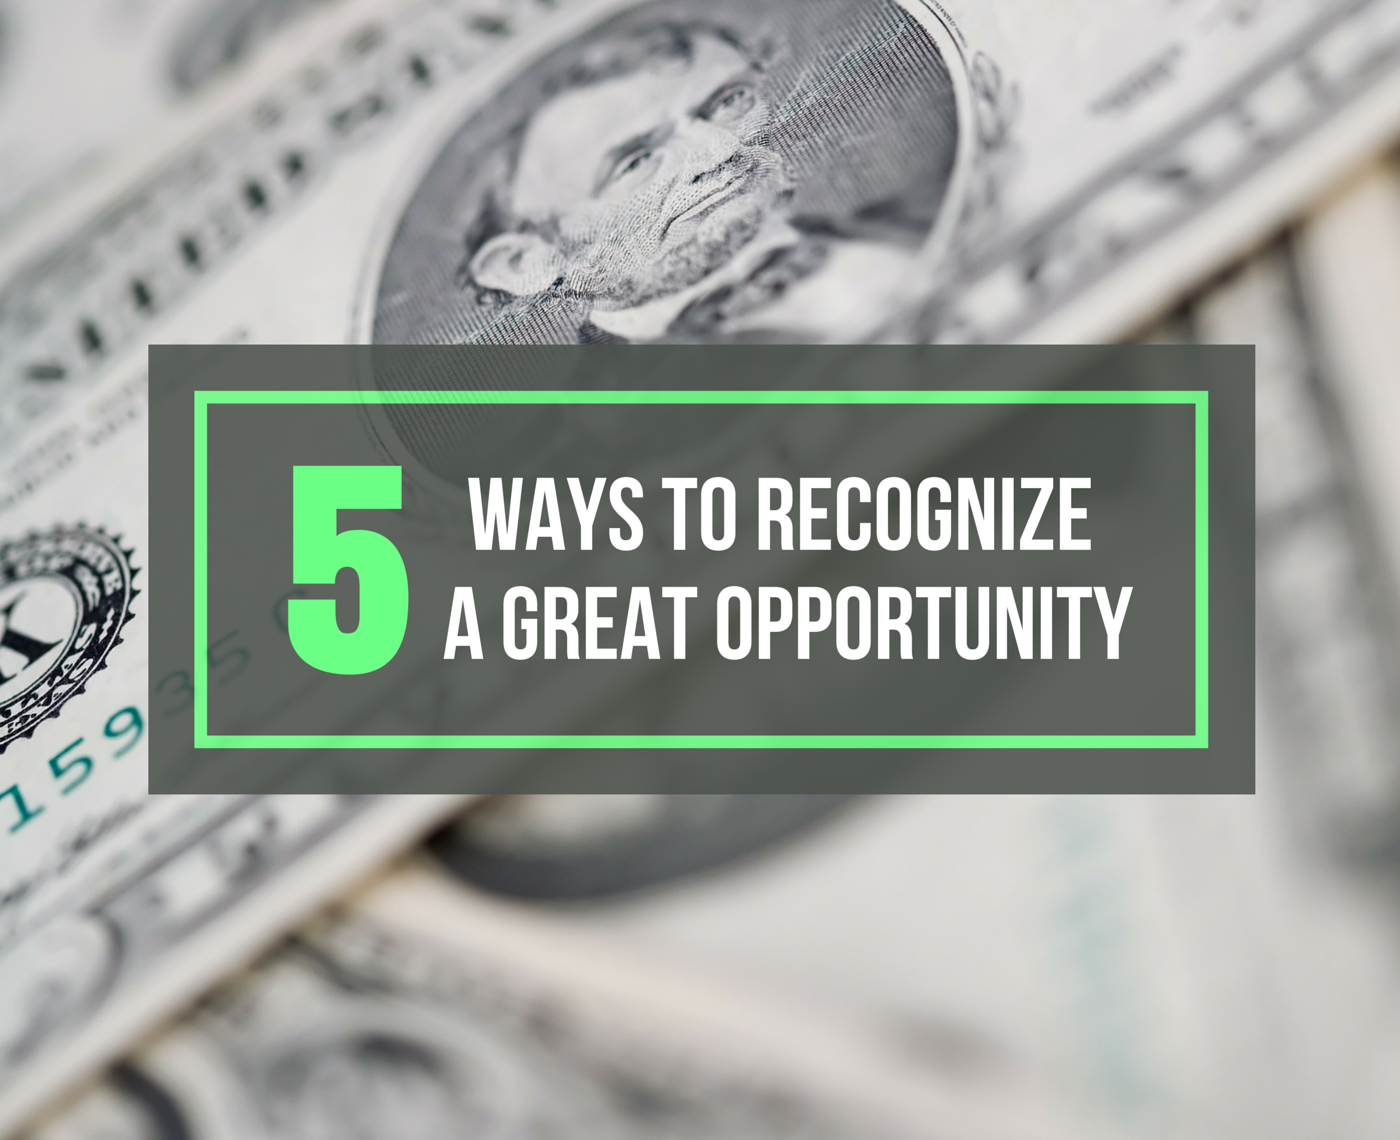 5 Ways to Recognize a Great Opportunity